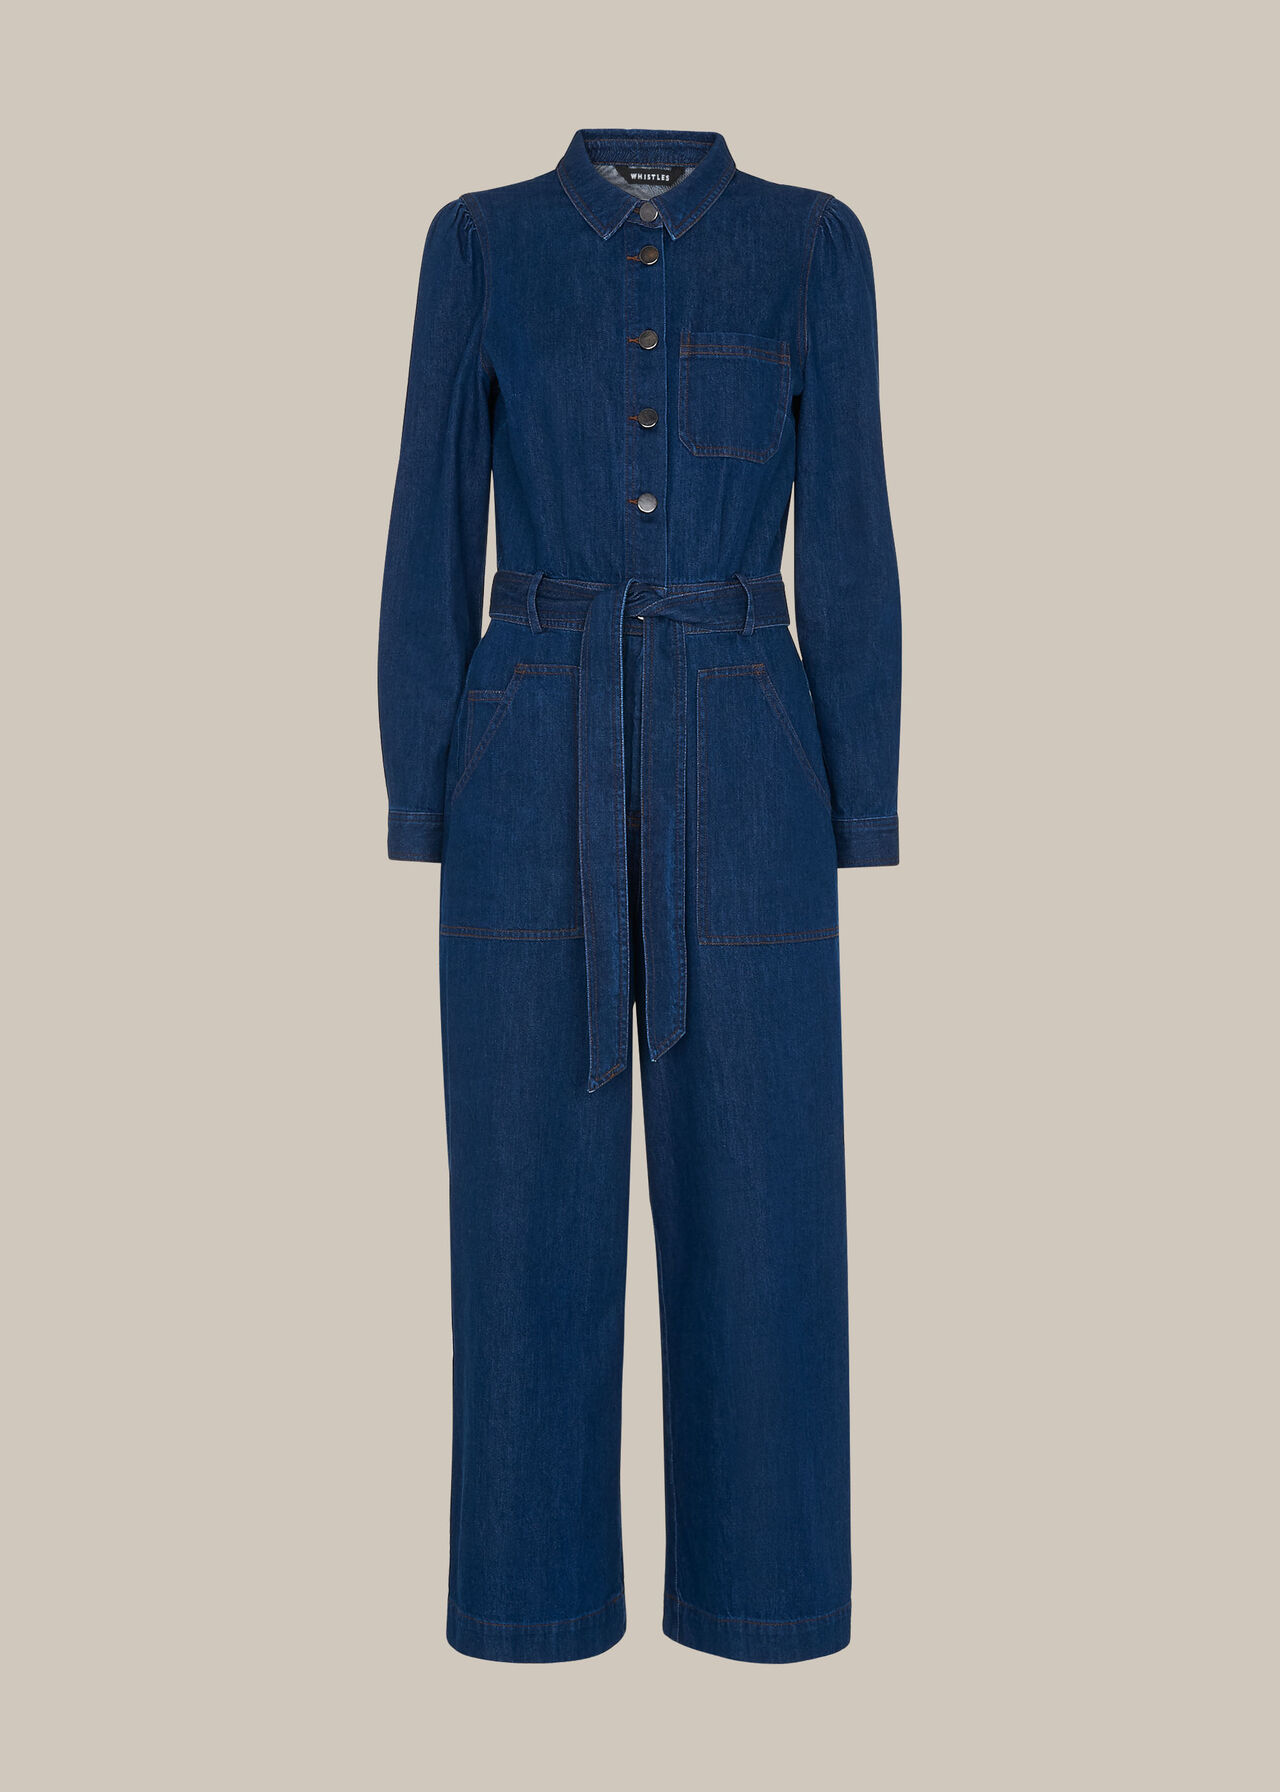 Denim Belted Jumpsuit